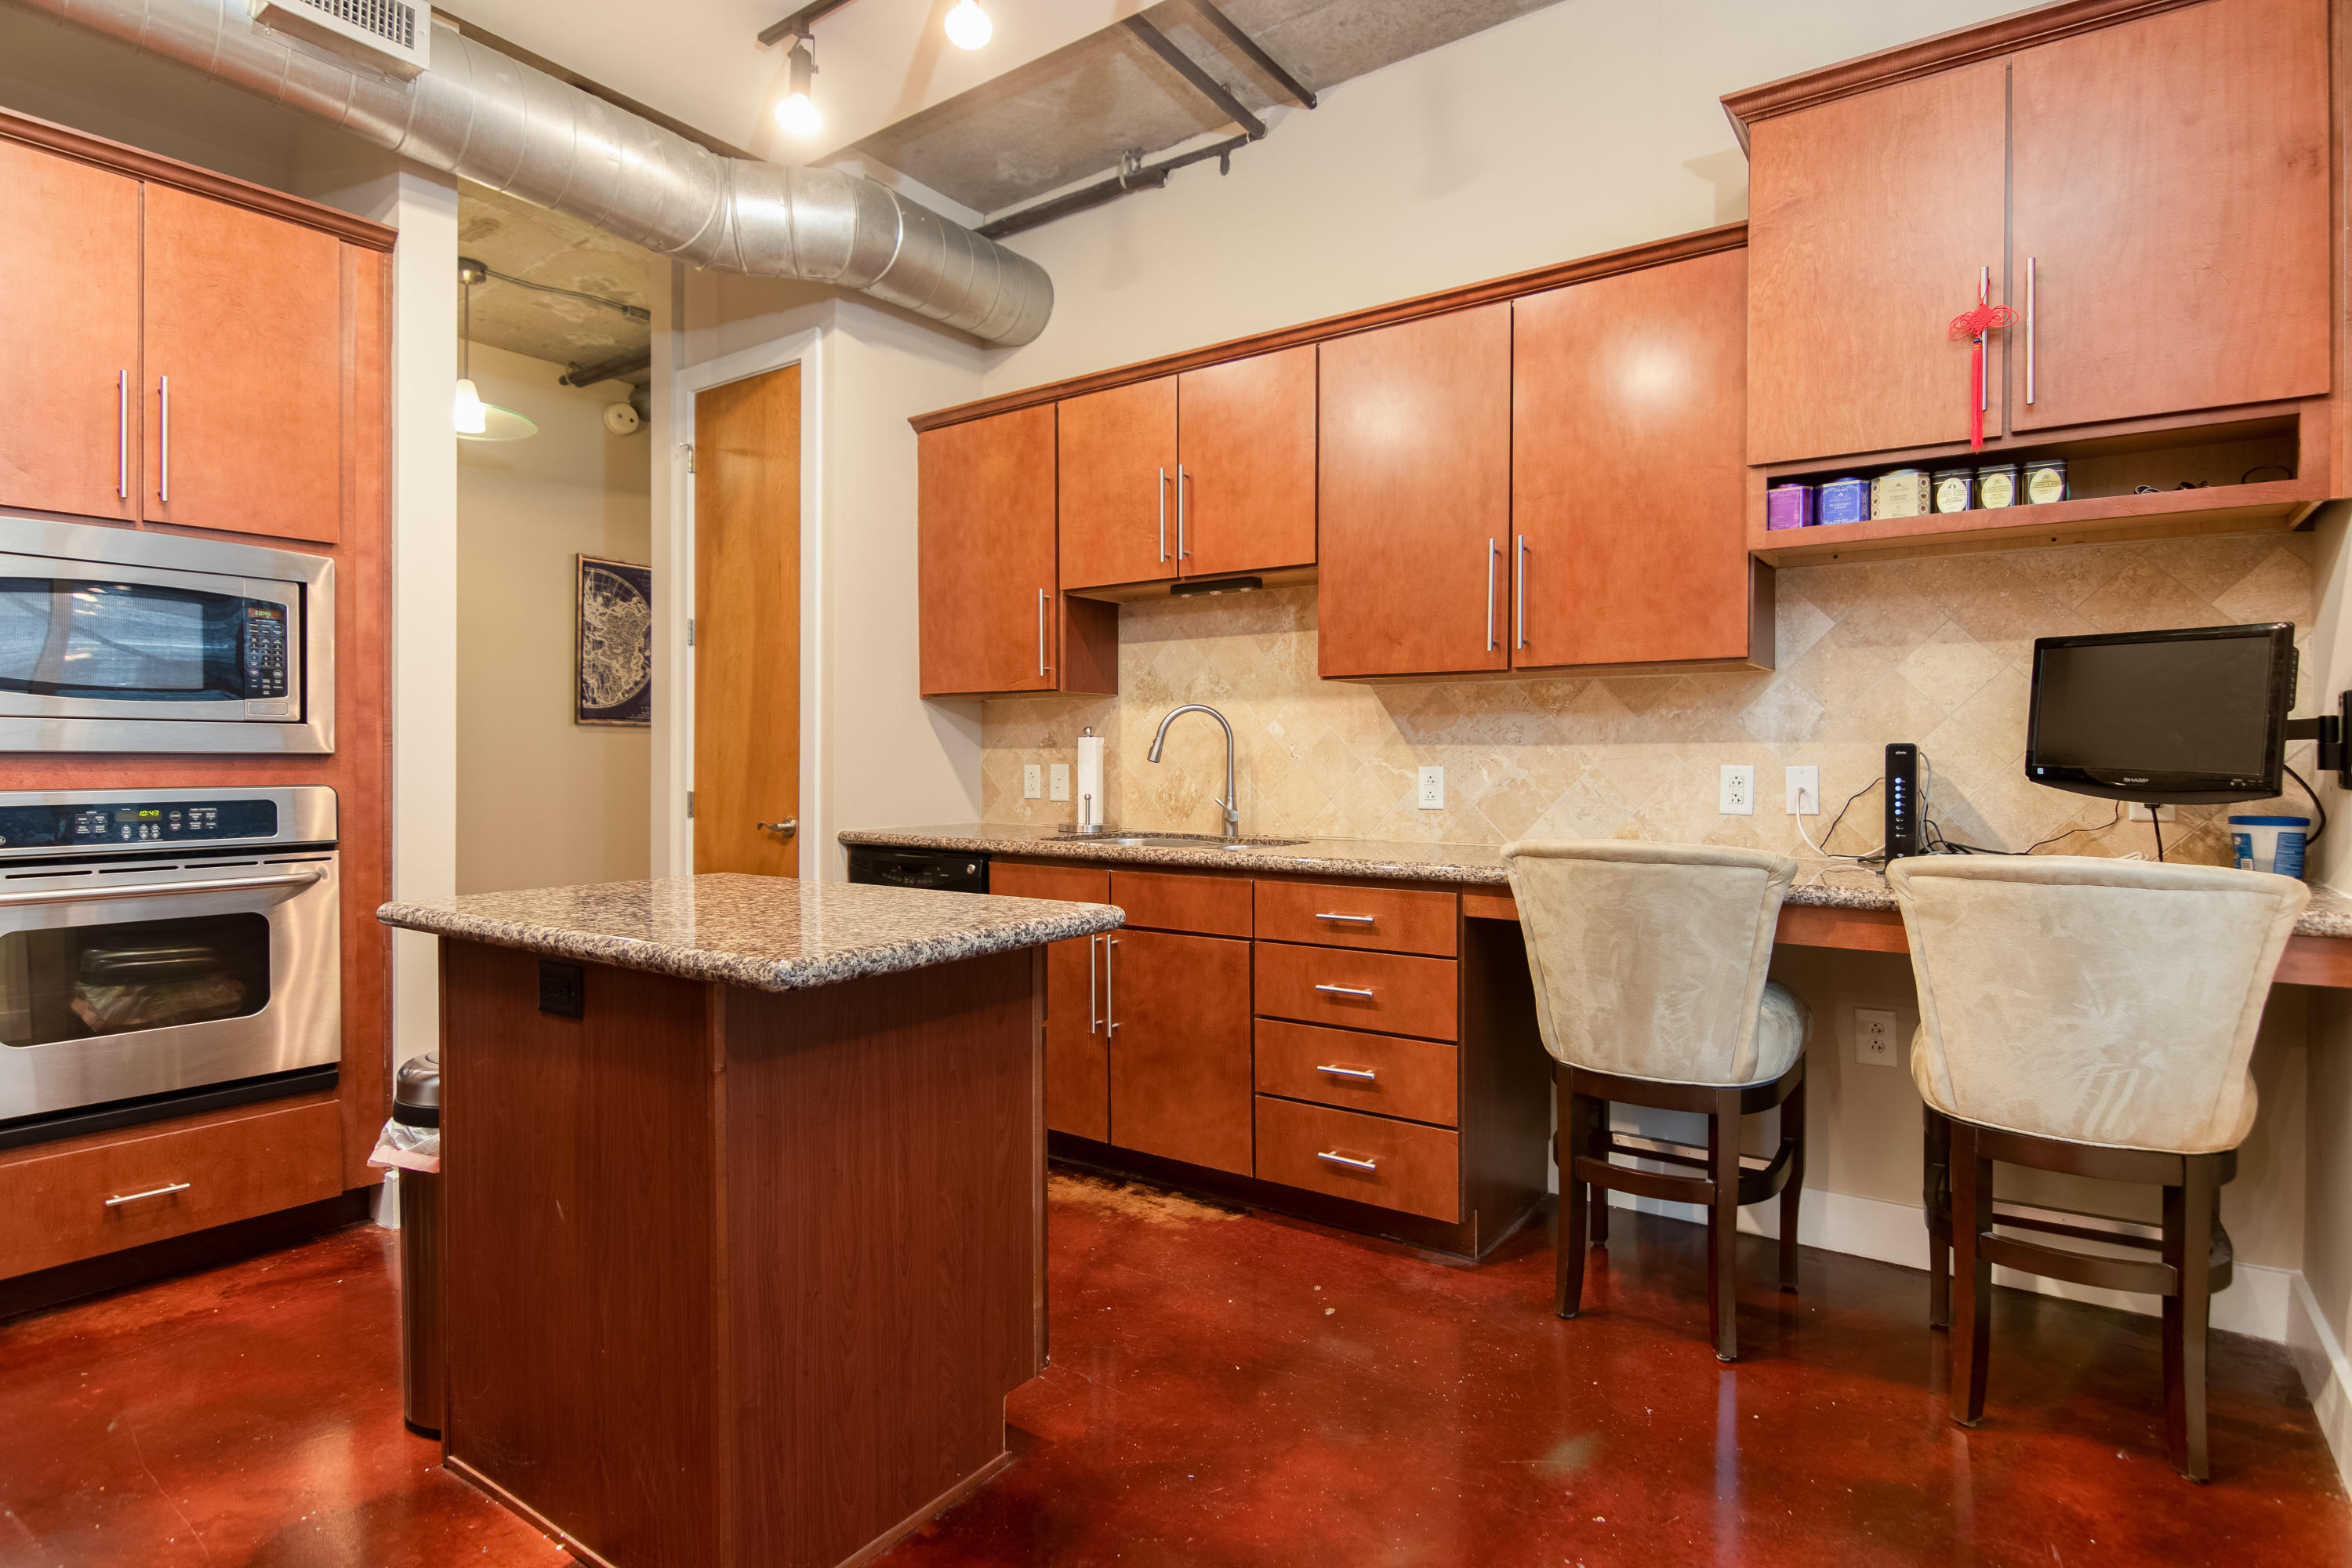 Bee Street Lofts Condos For Sale - 150 Bee, Charleston, SC - 7